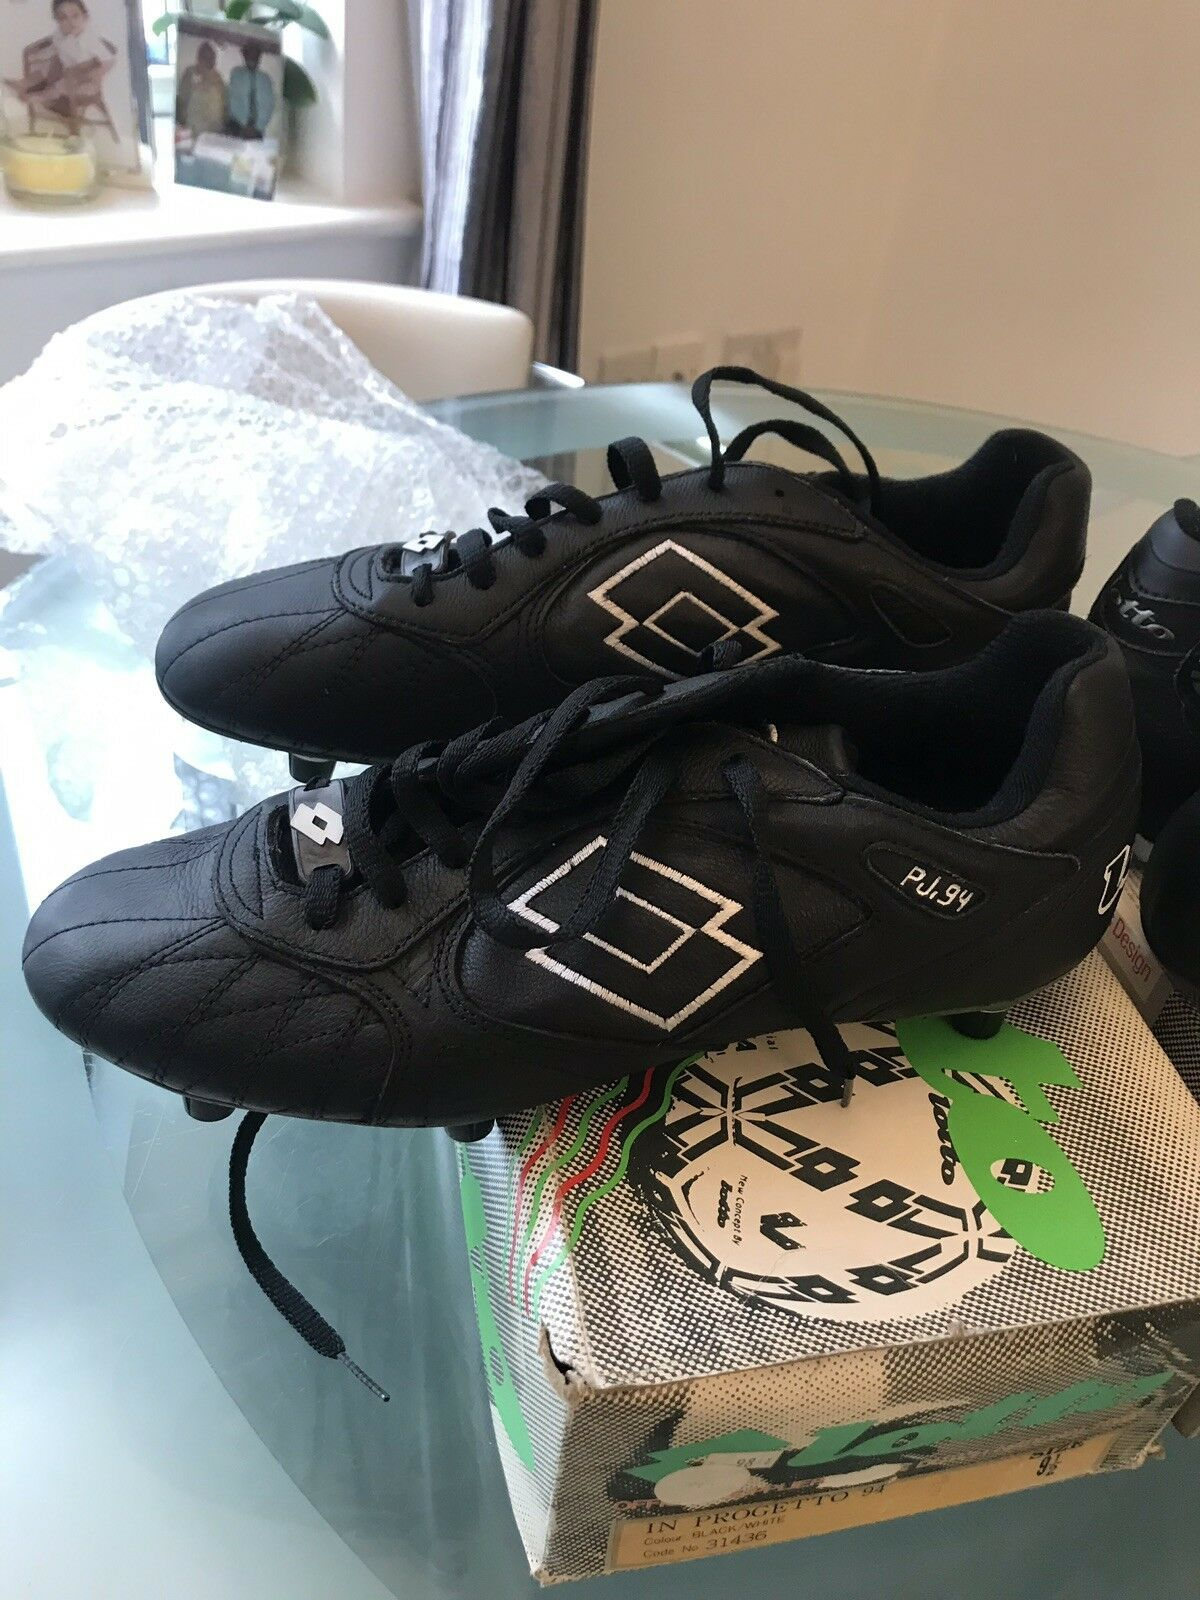 Vintage Lotto Football Boots Uk 9.5  a3263c7a36586